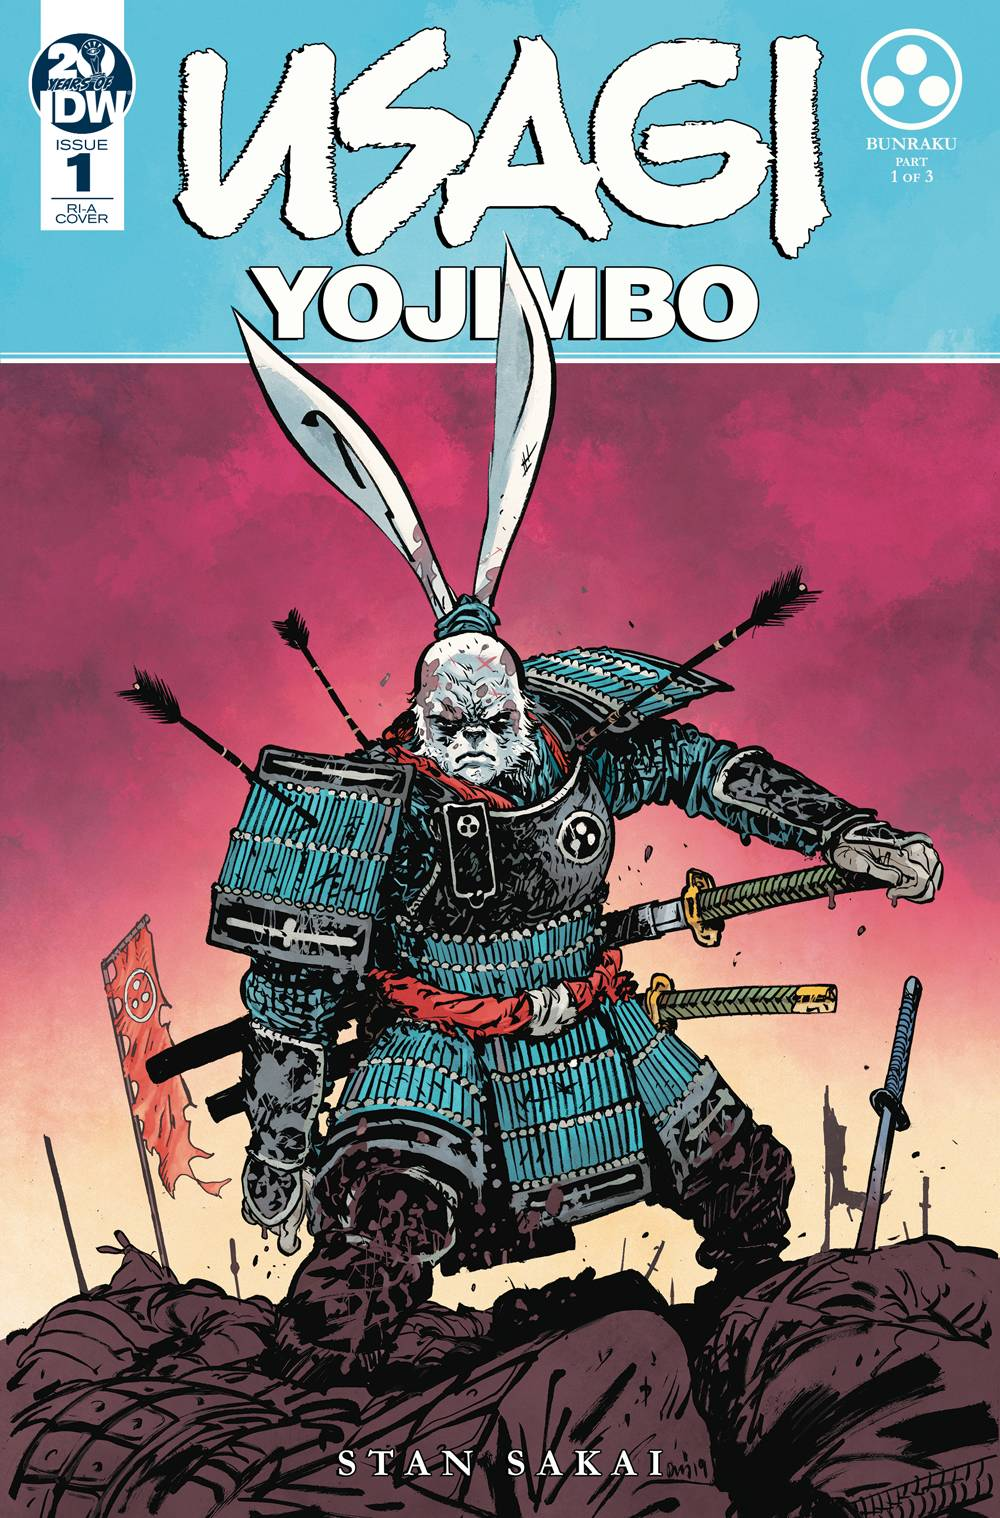 USAGI YOJIMBO 1 10 COPY INCV JOHNSON.jpg